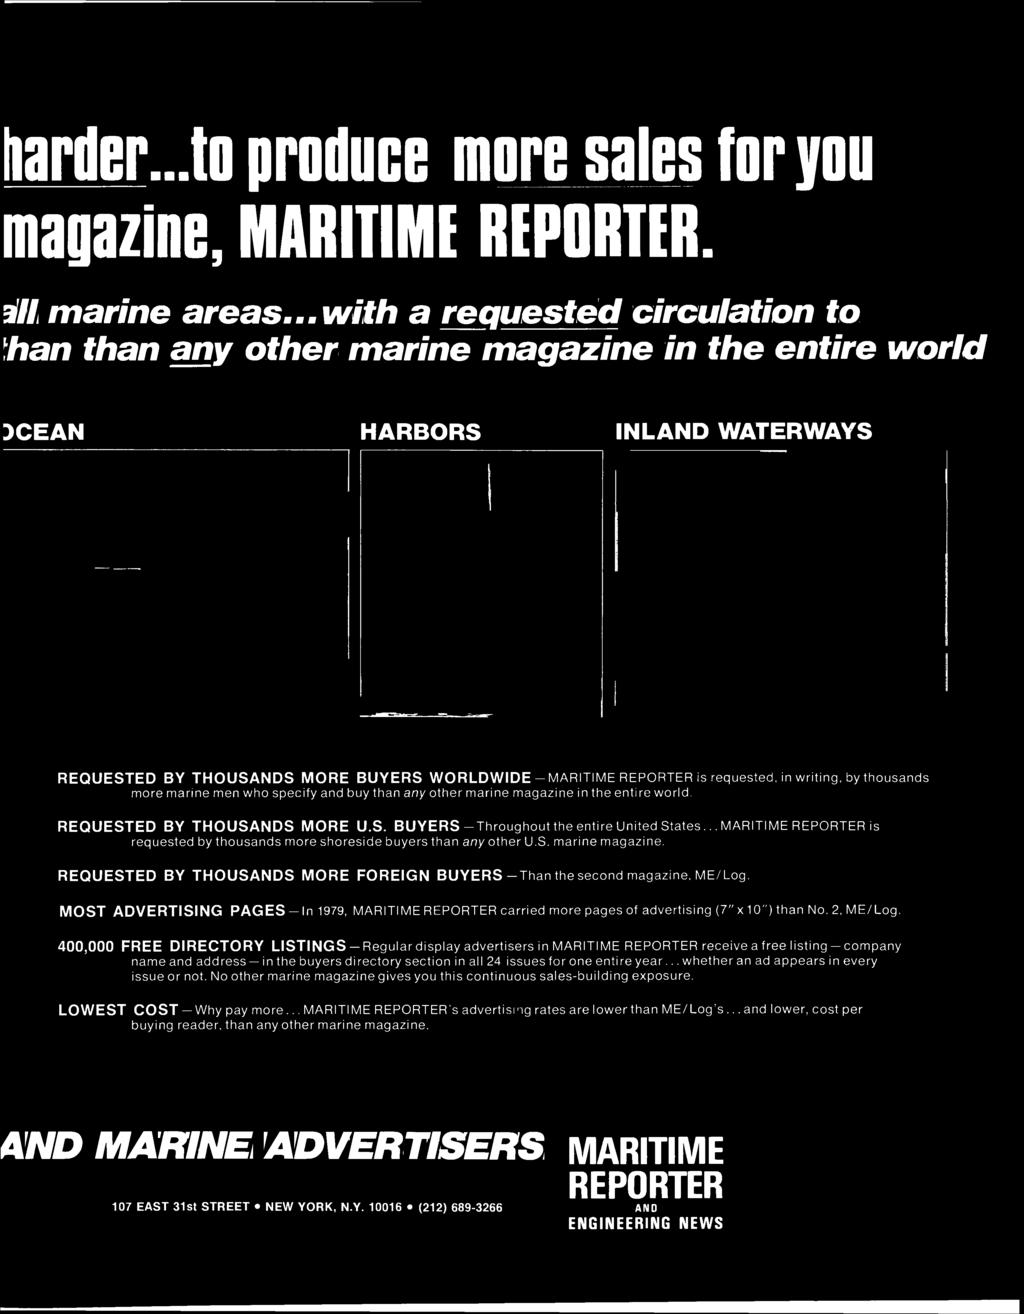 harder to produce more sales for you magazine, MARITIME REPORTER. ill marine areas.